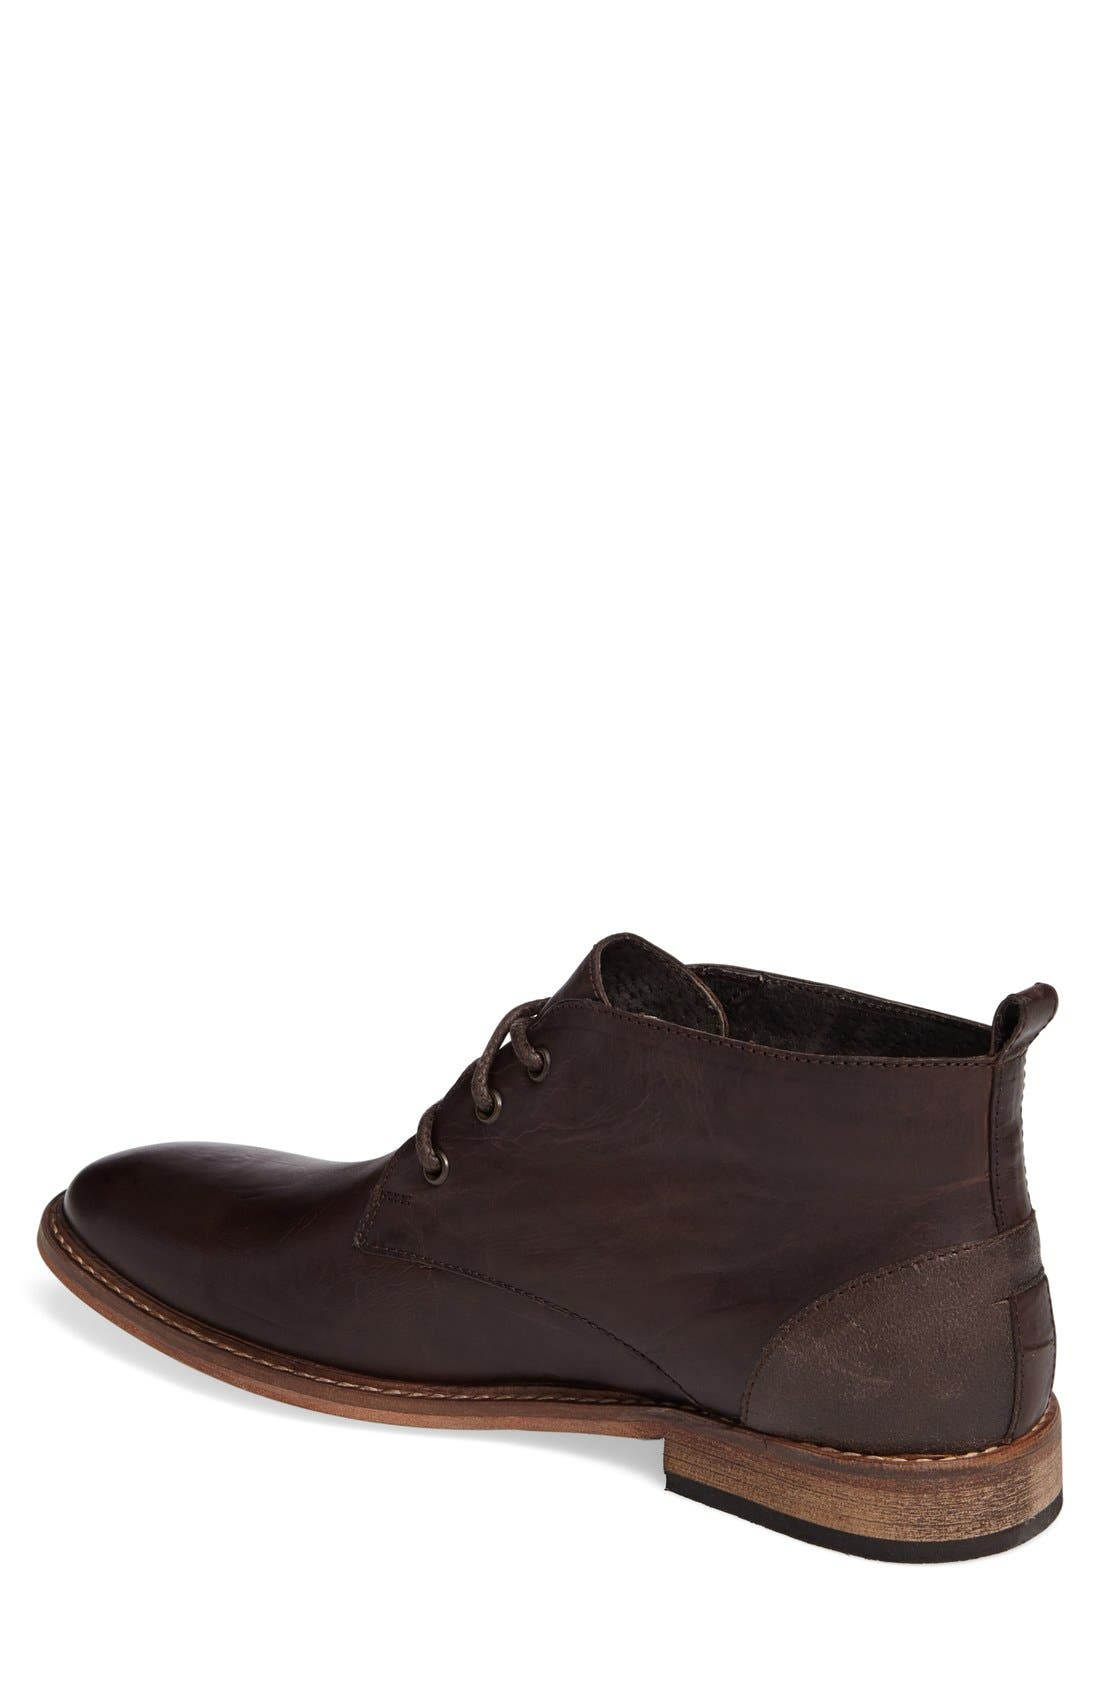 Prove Out Chukka Boot,                             Alternate thumbnail 2, color,                             Brown Leather